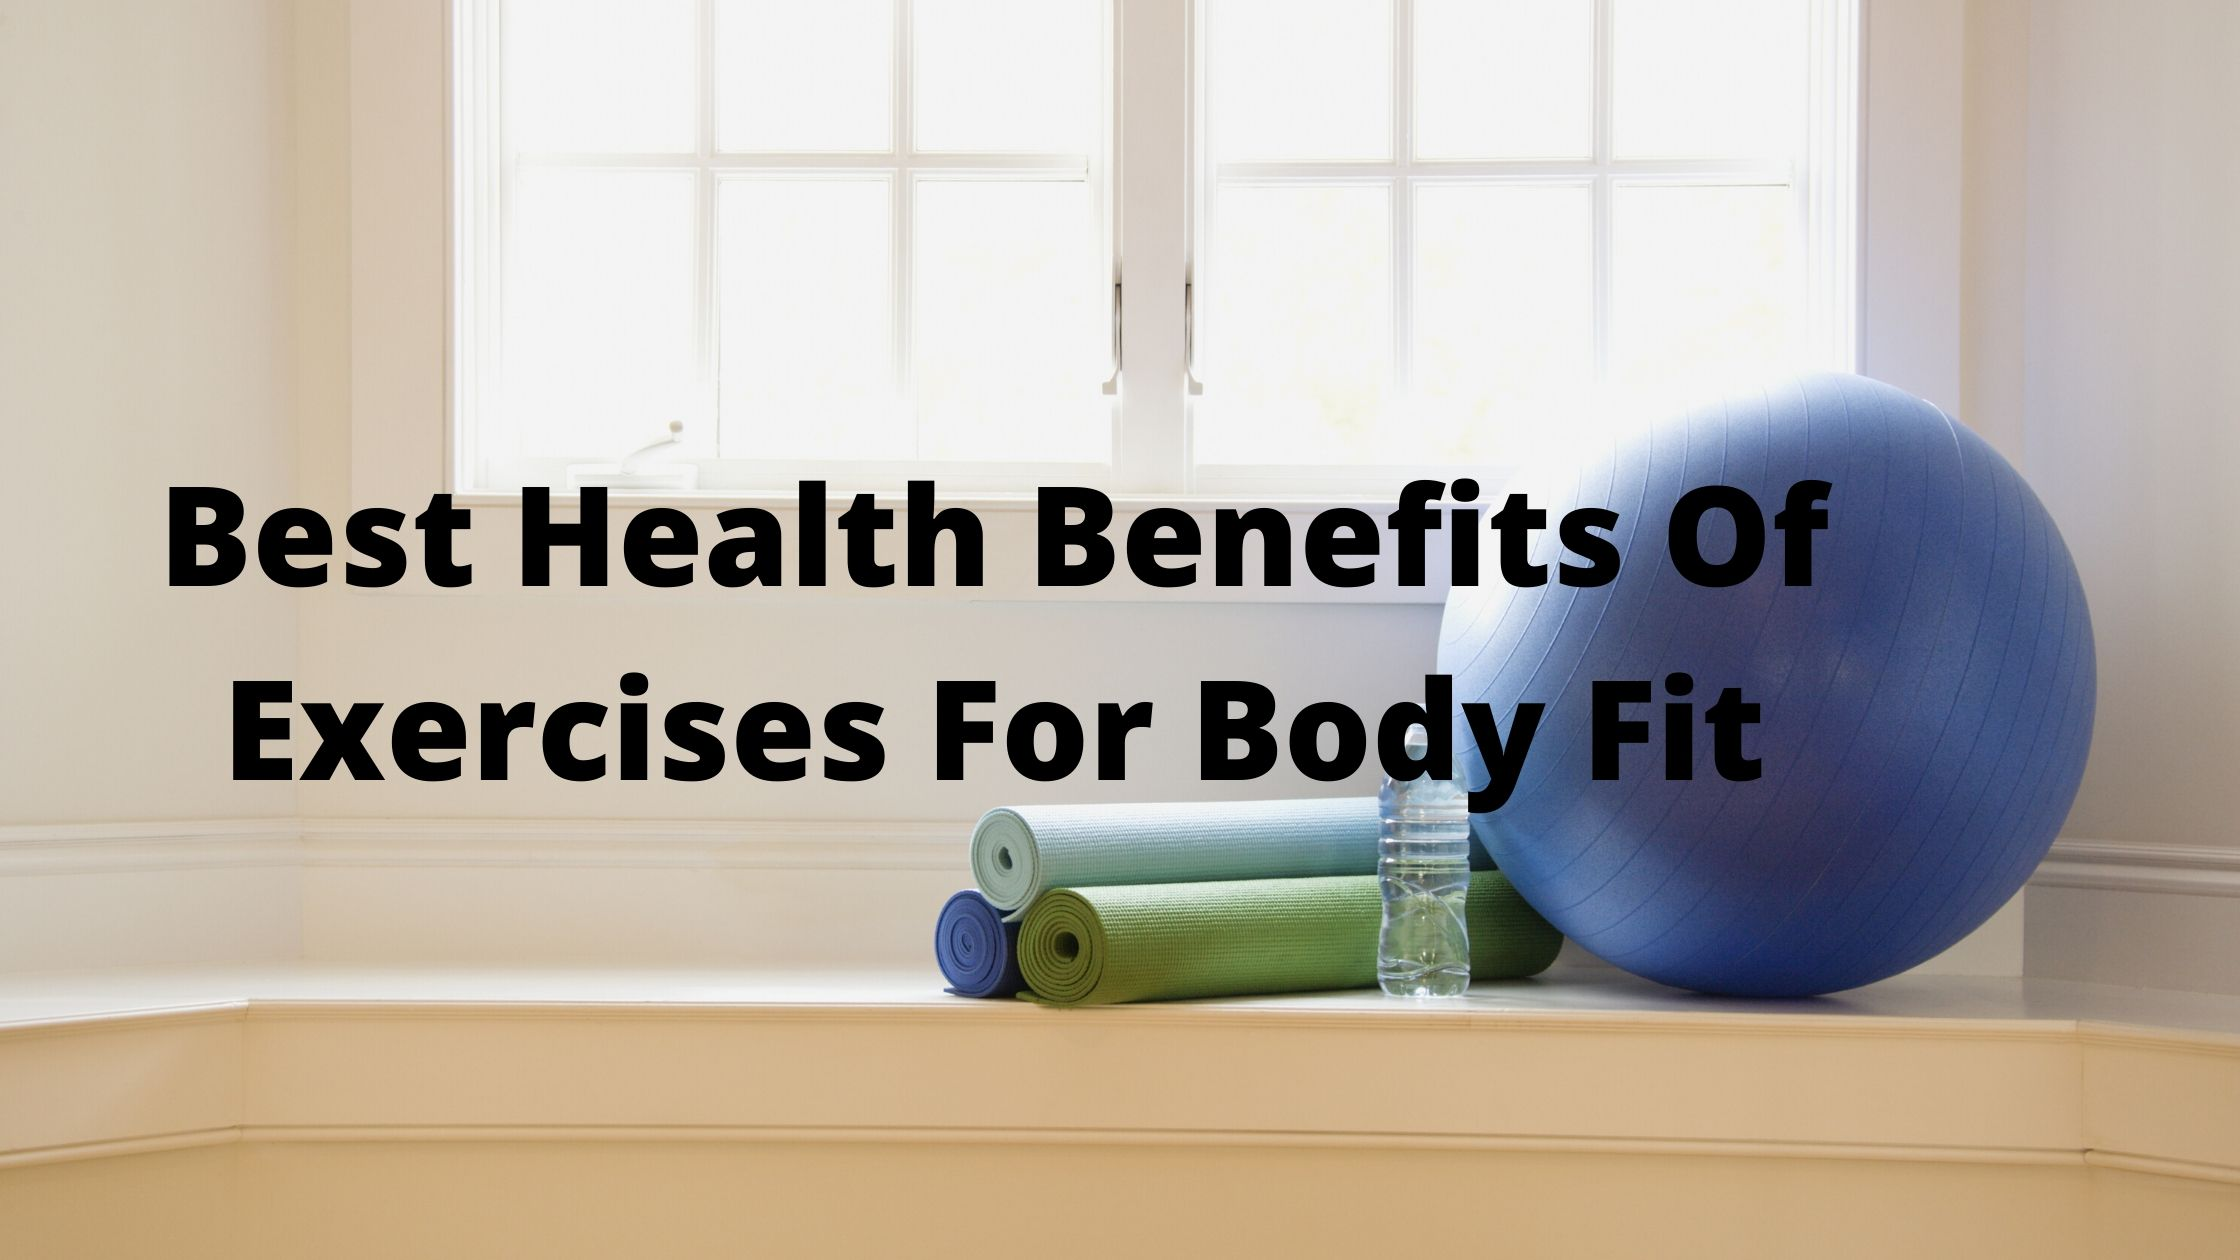 Benefits Of Exercises